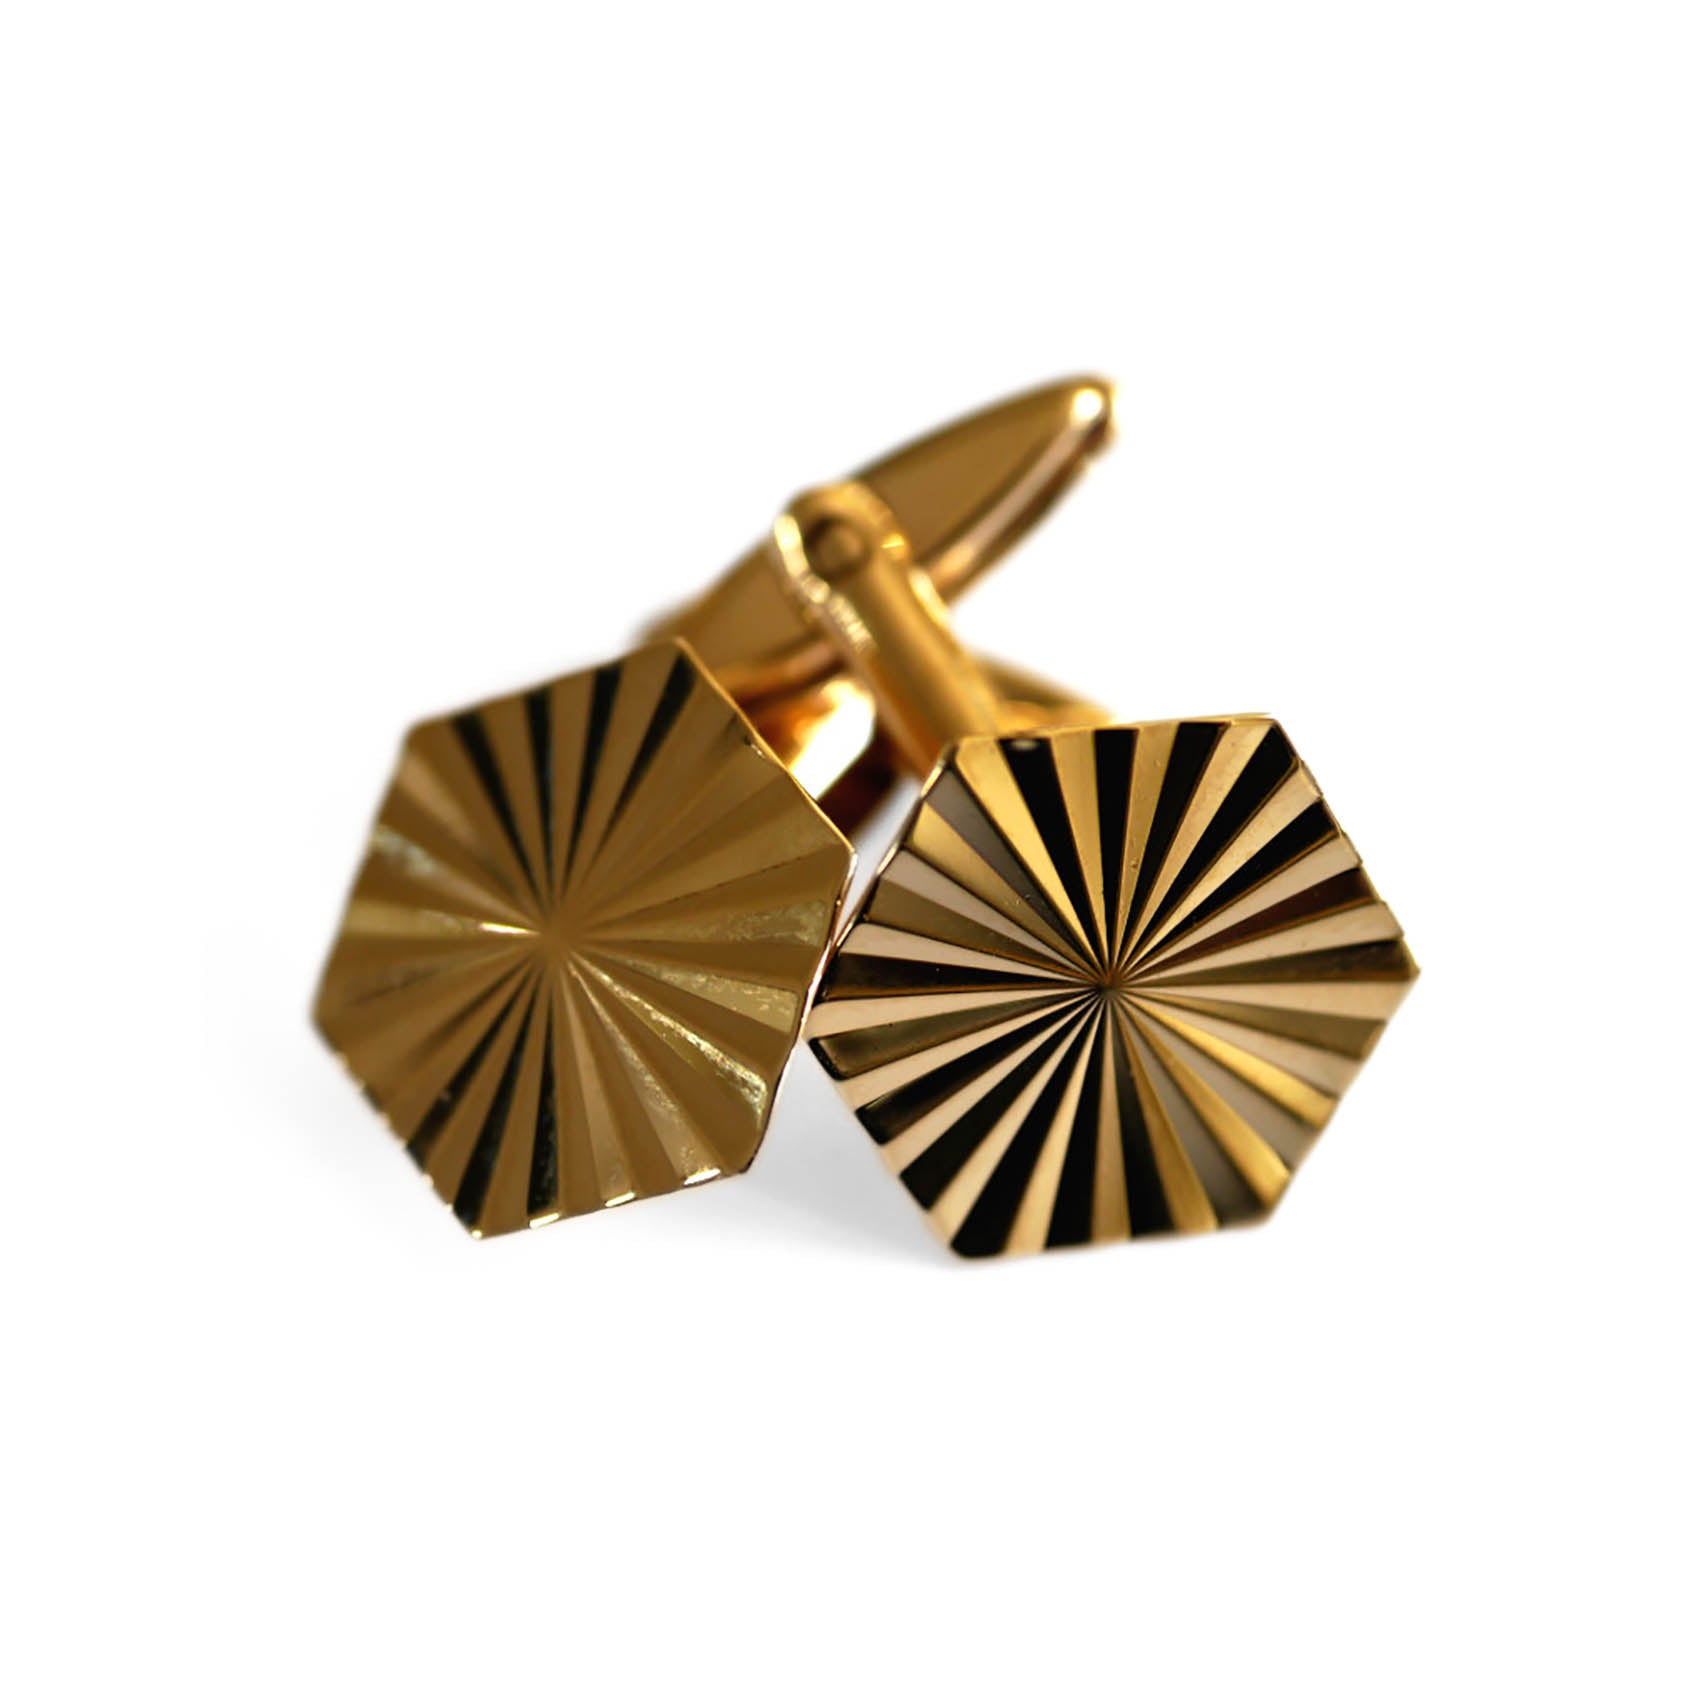 Gold Glorious Gold: Hexagonal 1960s Cufflinks